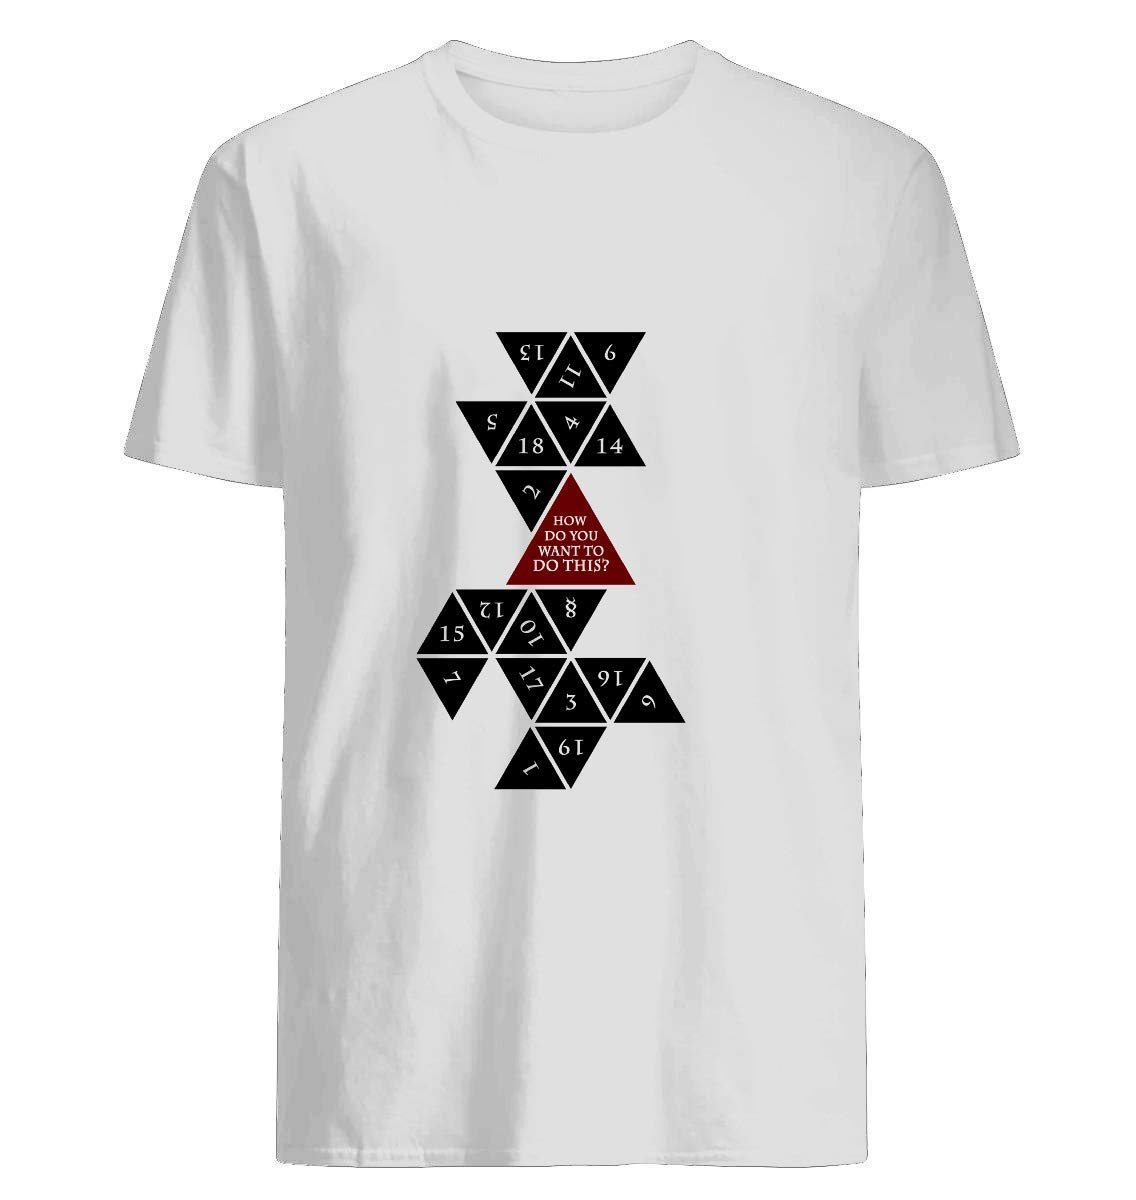 Flattened D20 Dungeons And Dragons Critical Role Fan Design Shirts